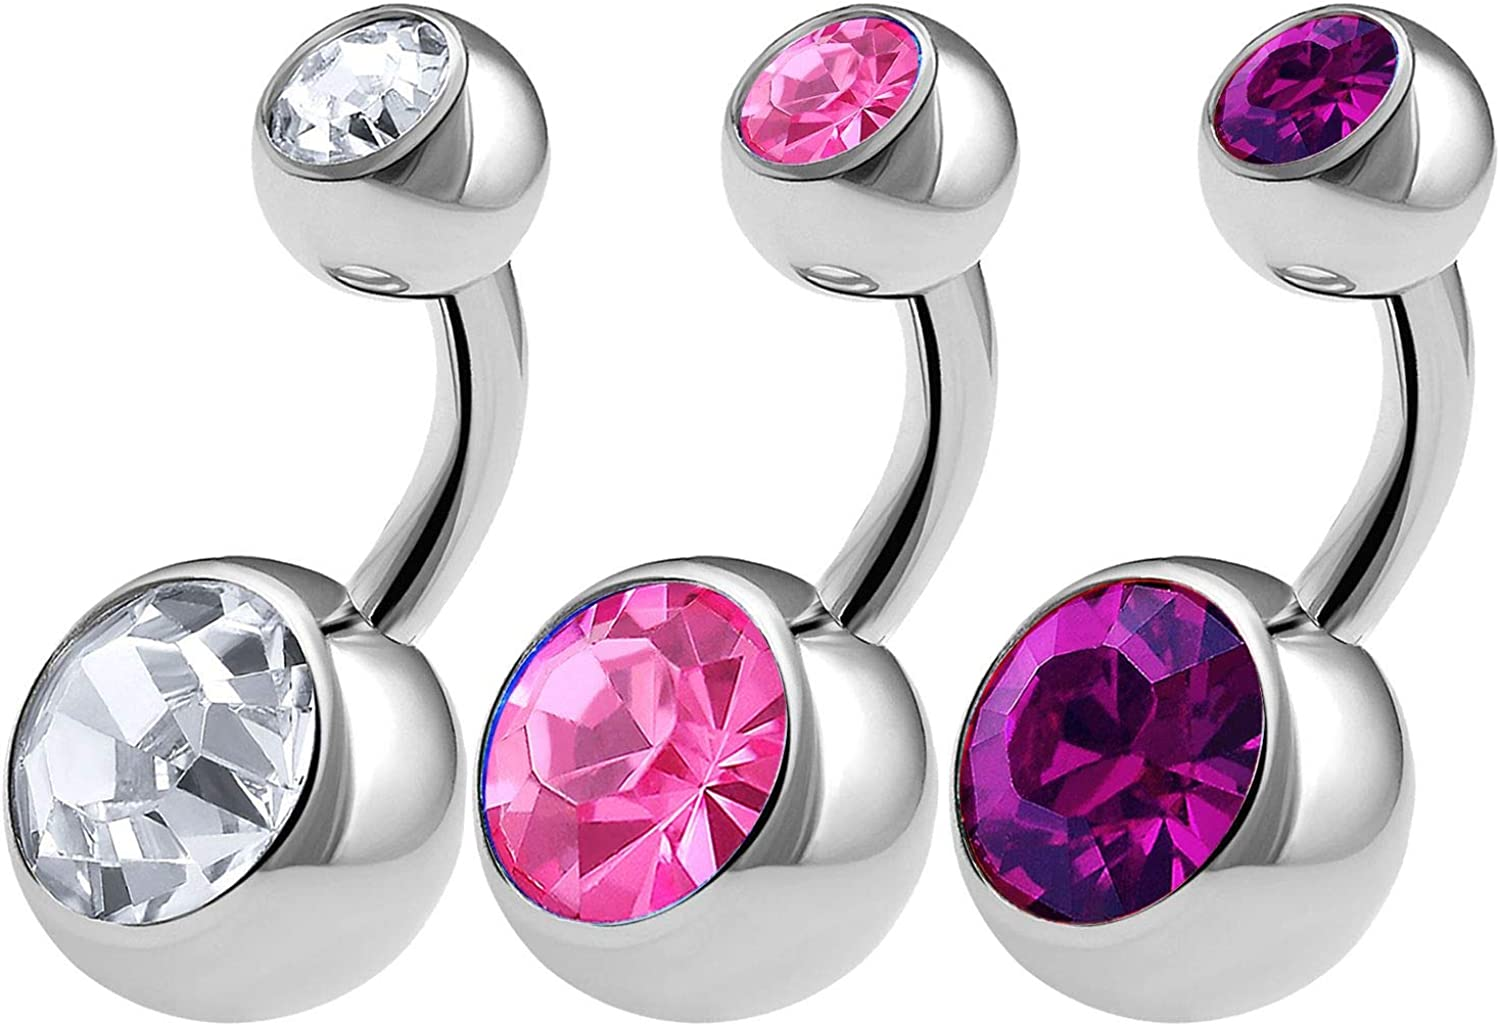 3PCS 316L Surgical Steel Shallow Belly Button Rings Studs 14 Gauge 1/4 6mm Clear Rose Crystal Balls Navel Bars Choose Colors